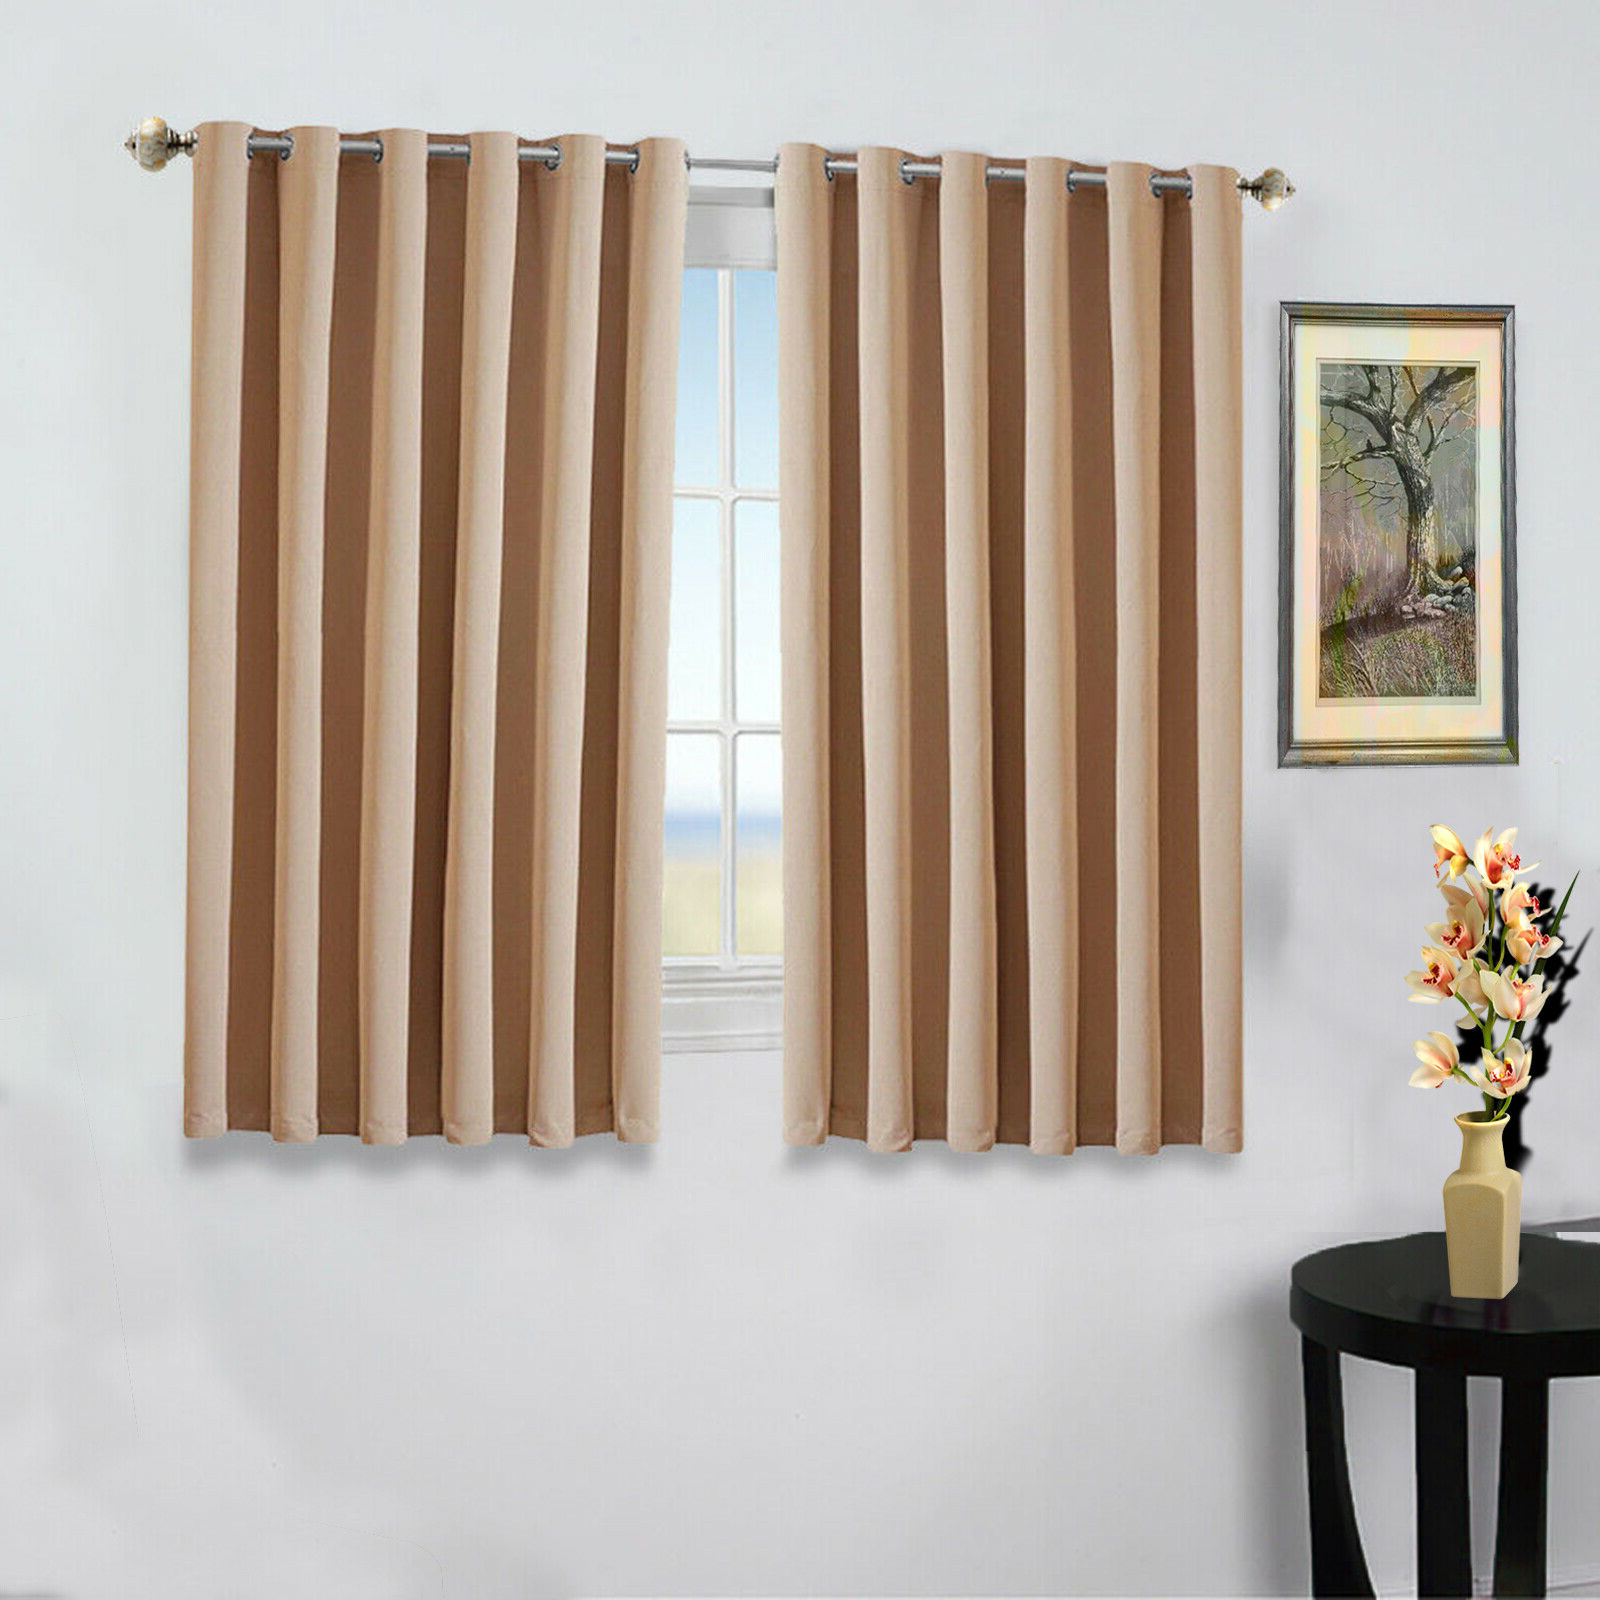 Thermal Insulated Blackout Curtain Pairs With Regard To Newest Details About New Pair Of Eyelet Thermal Insulated Blackout Curtains For Short Windows Kitchen (View 19 of 20)